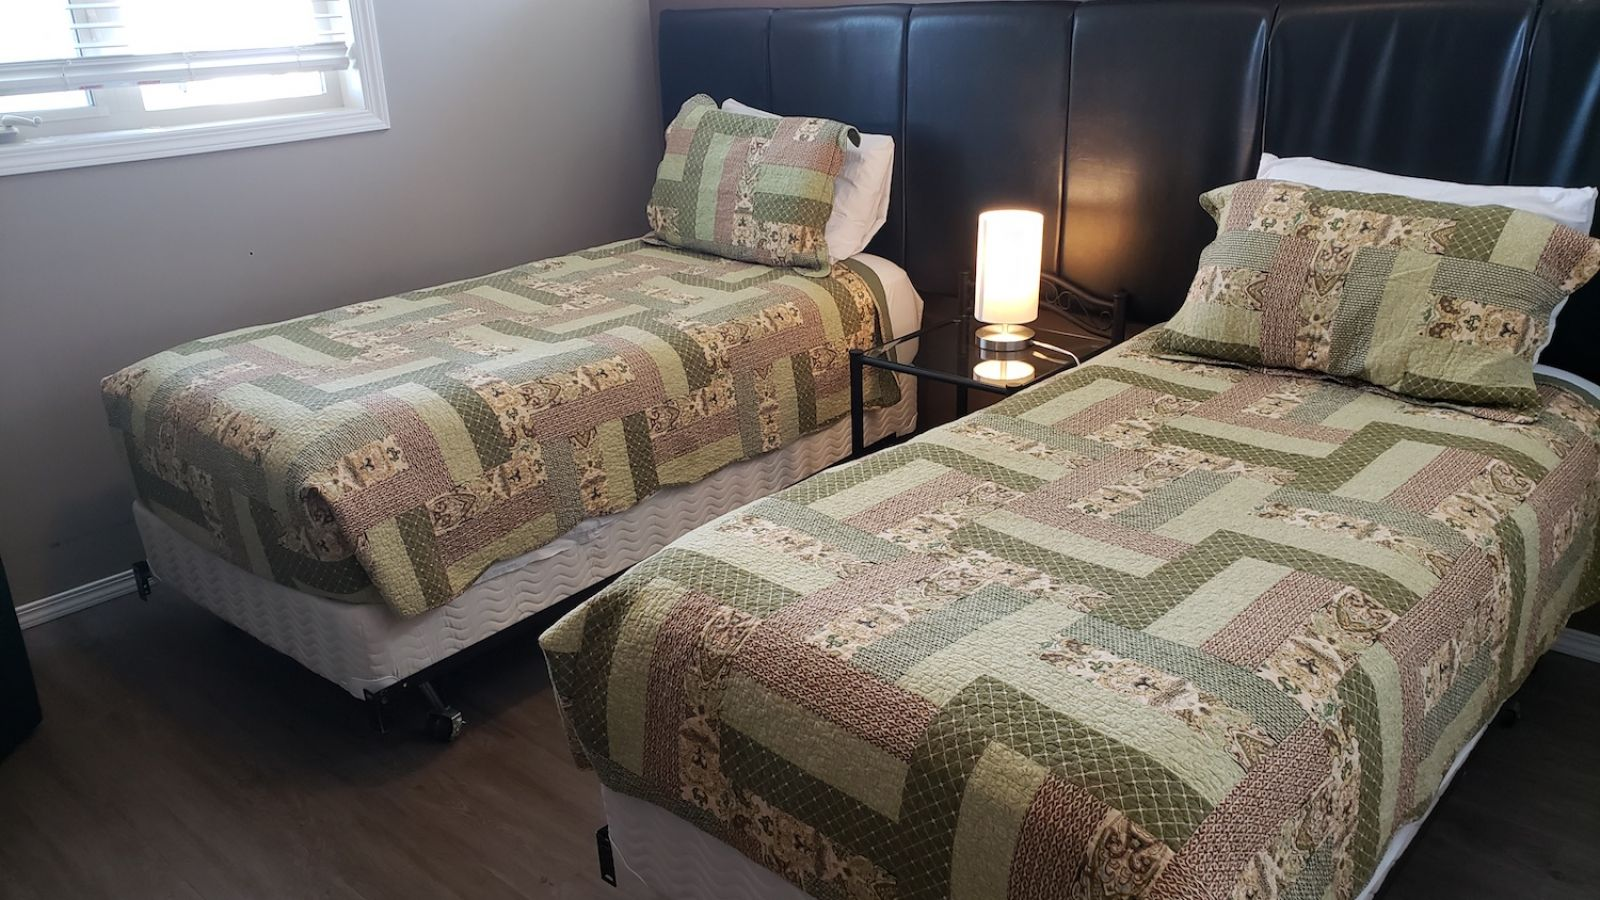 Pinnacle Point Condos - typical bedrooms